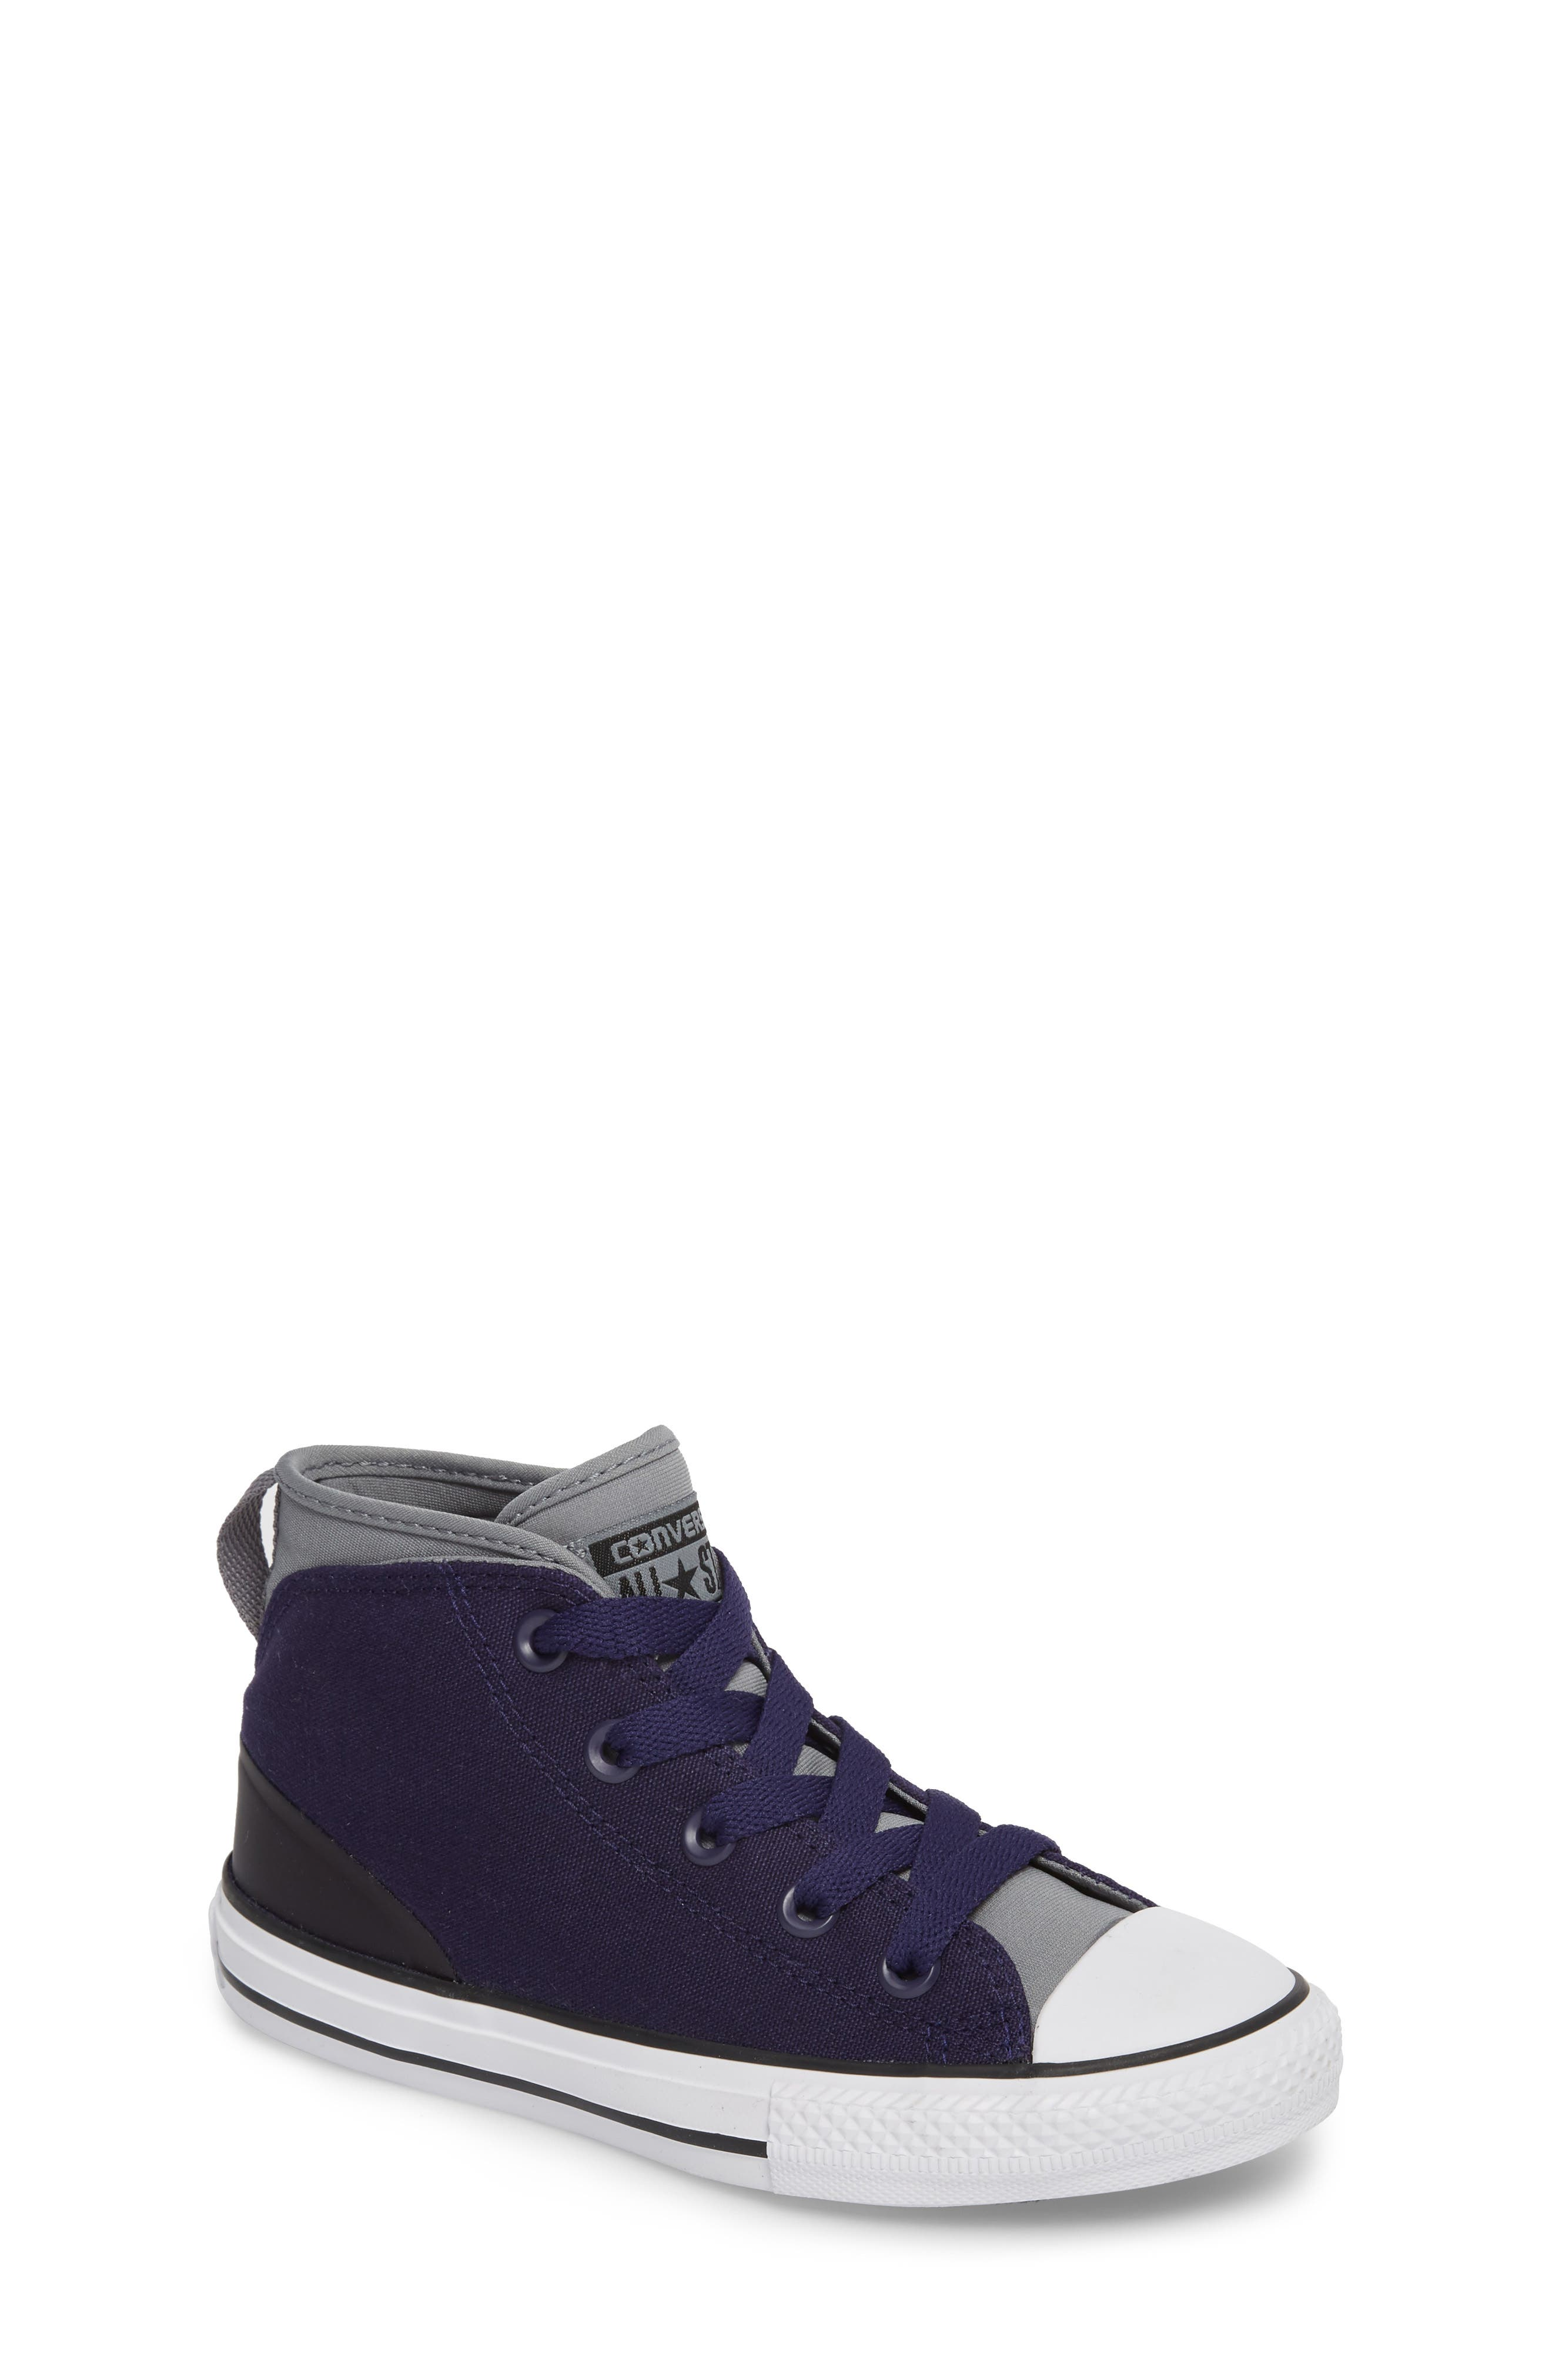 Chuck Taylor<sup>®</sup> All Star<sup>®</sup> Syde Street High Top Sneaker,                         Main,                         color, 401